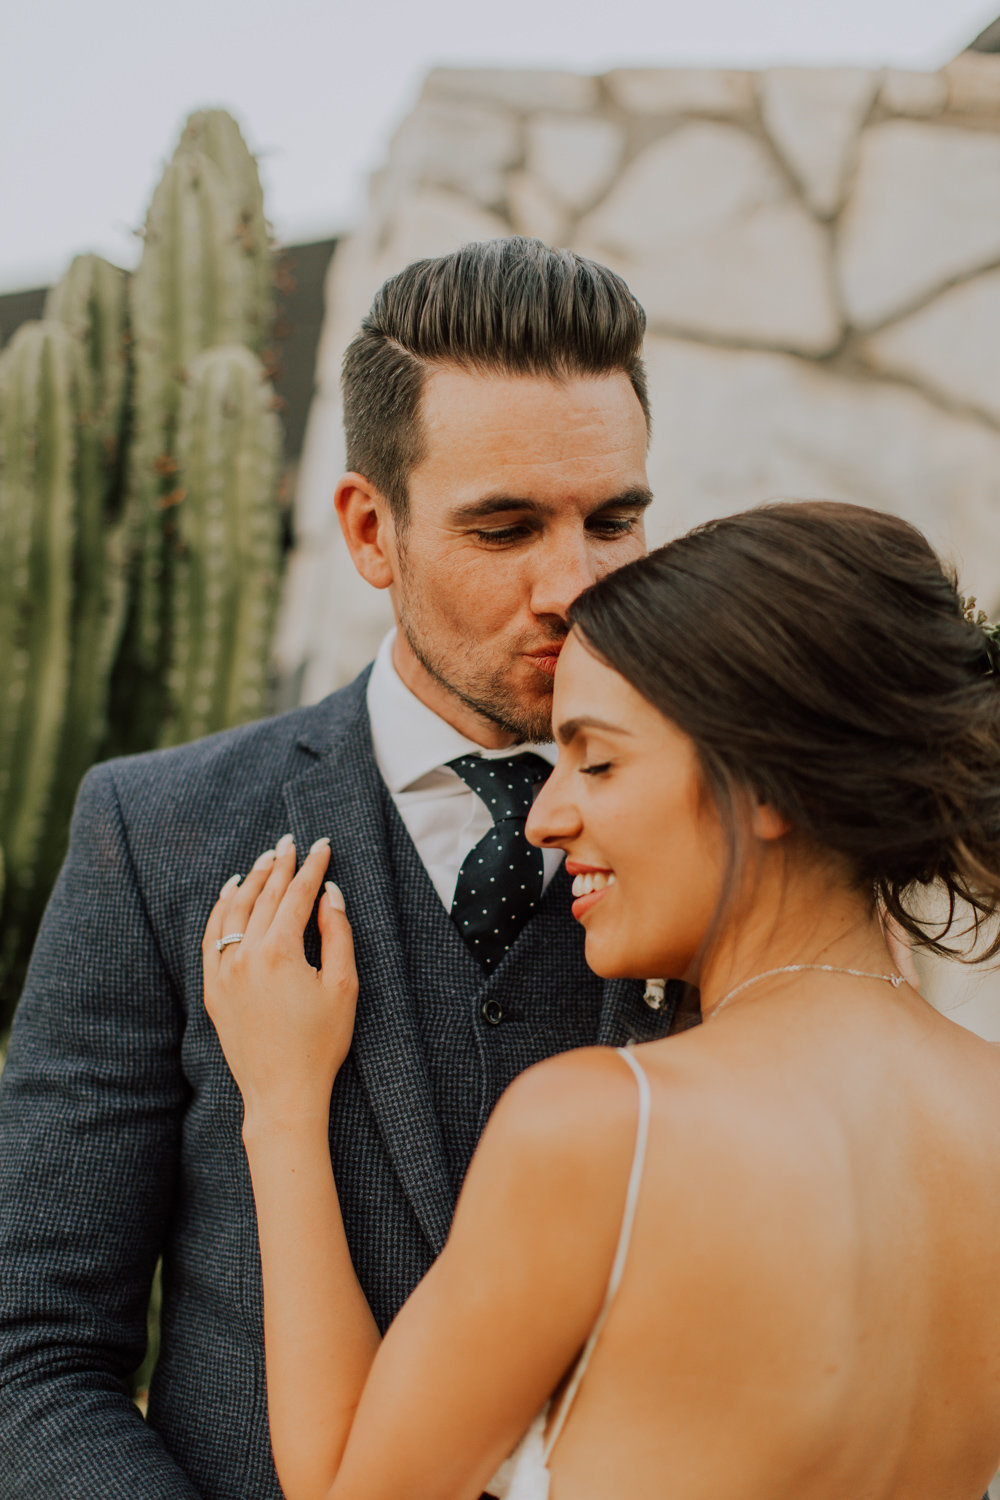 Brianna Broyles_Palm Springs Wedding Photographer_Ace Hotel Wedding_Ace Hotel Palm Springs-71